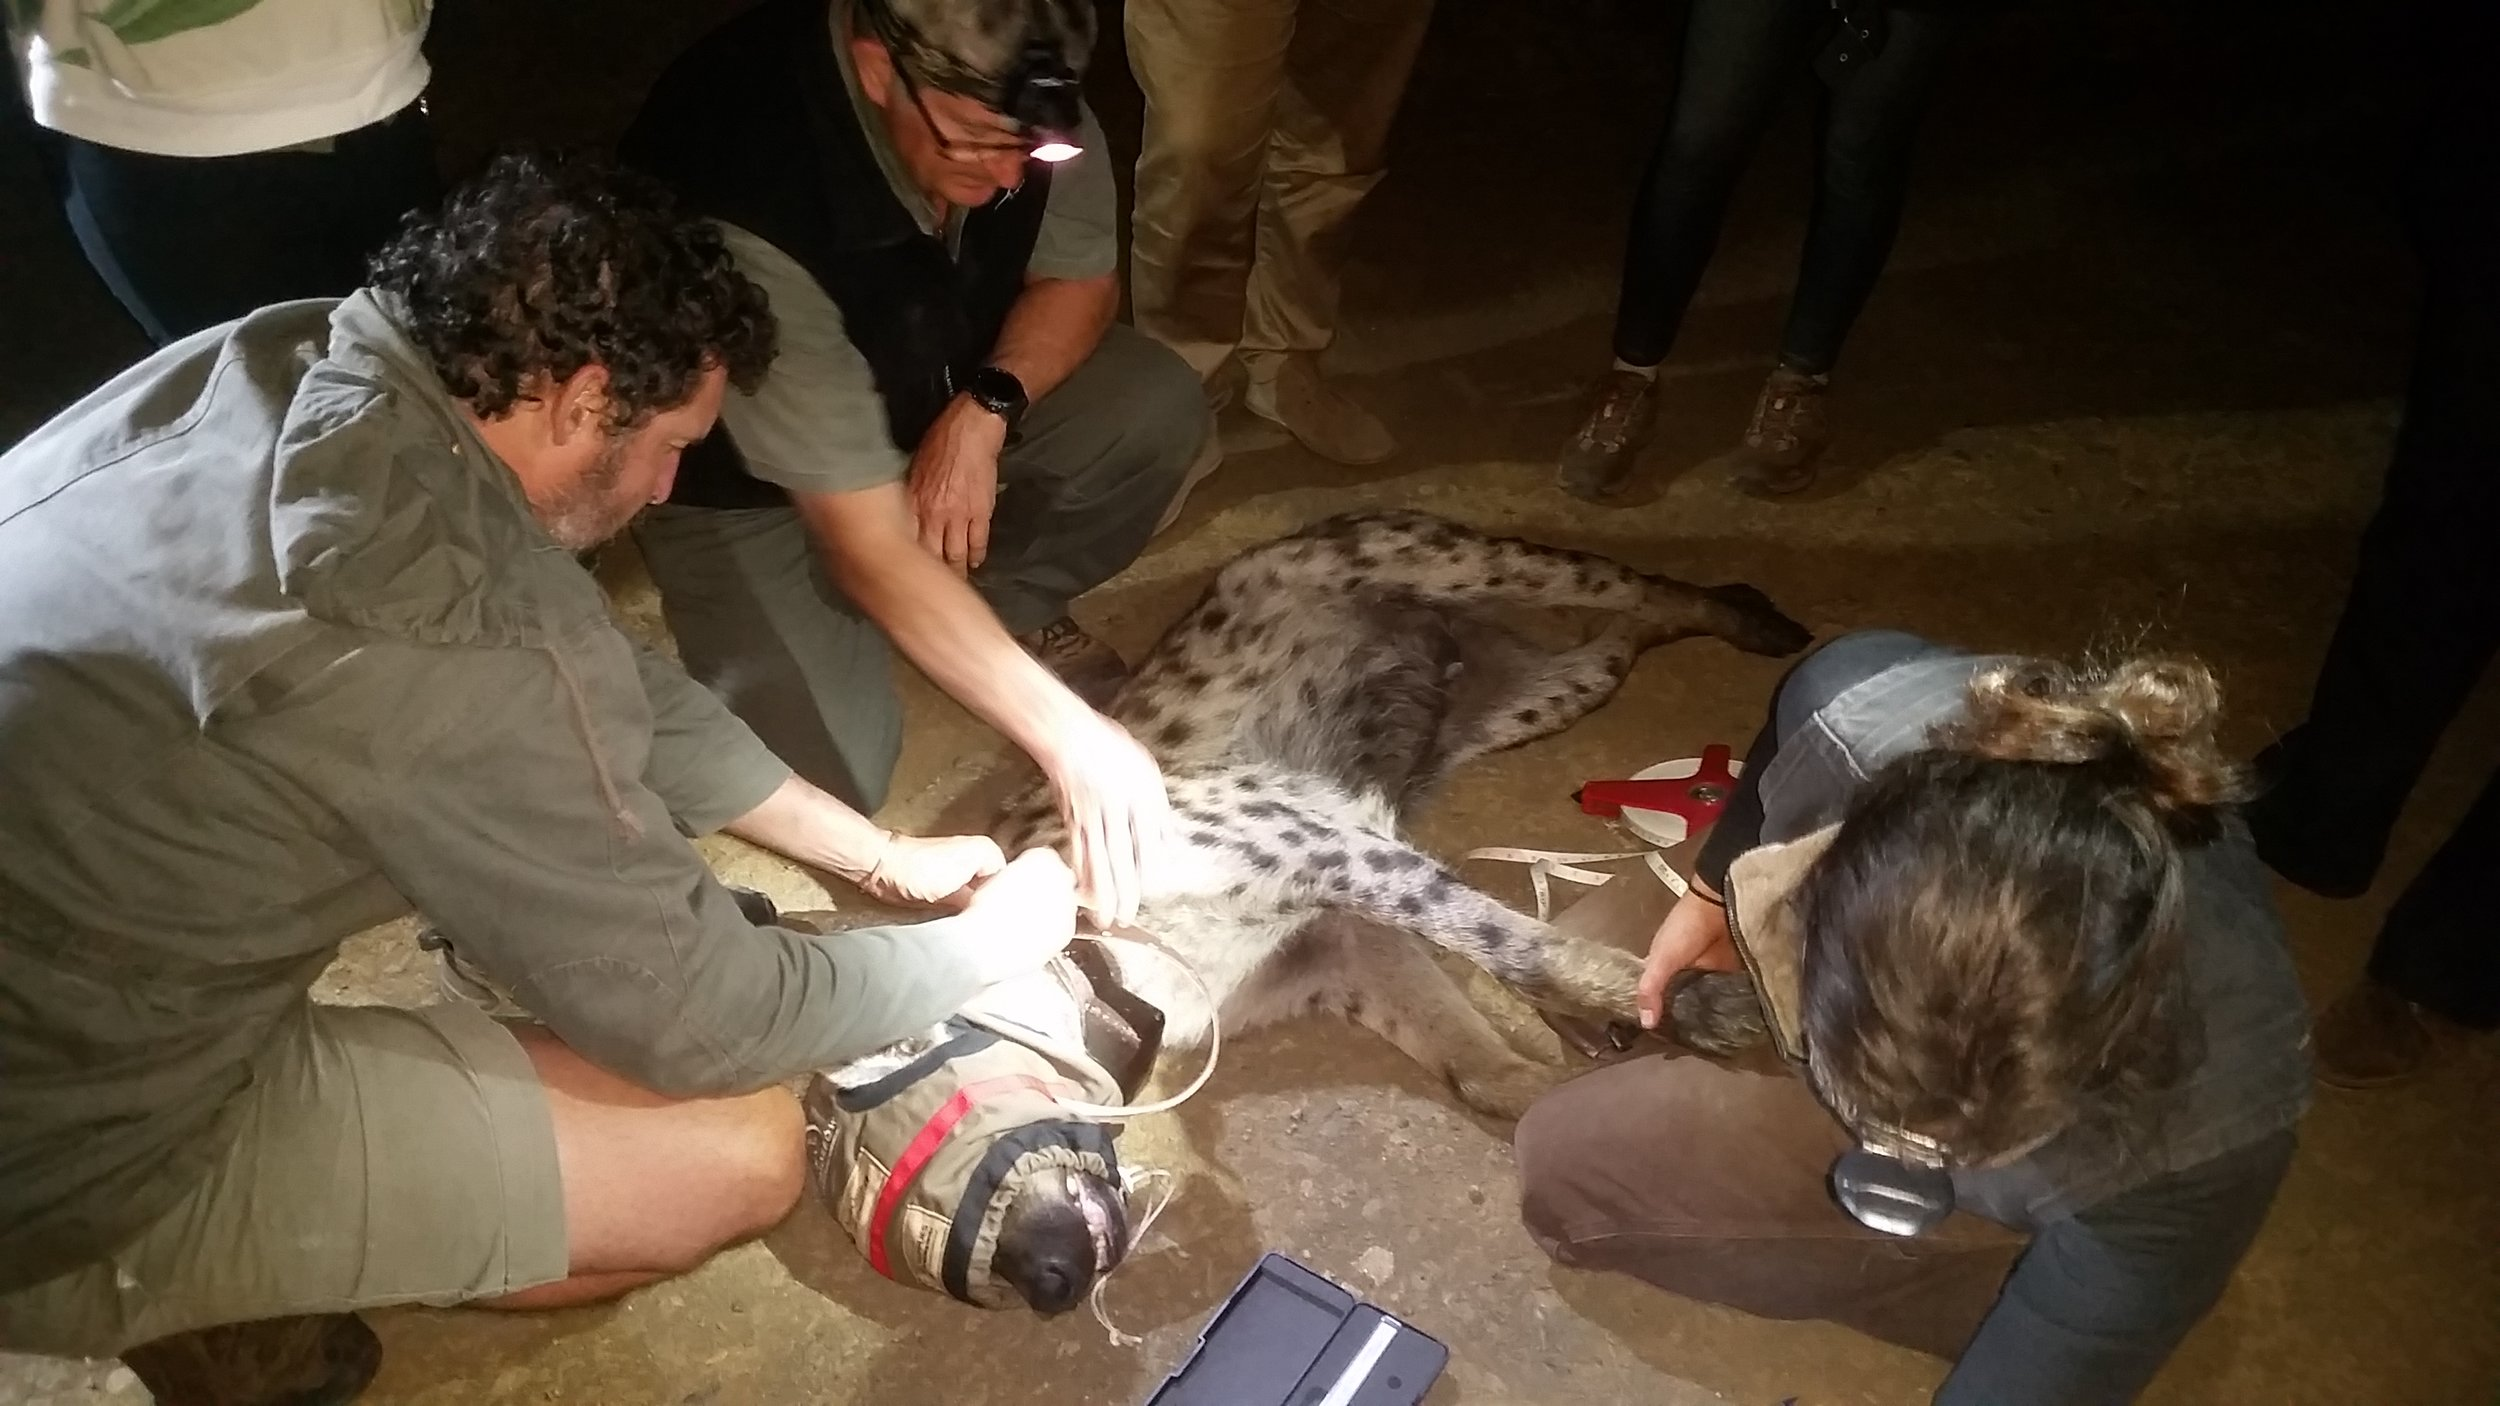 andBeyond Phinda Private Game Reserve conservation manager Simon Naylor, veterinarian Mike Toft and veterinary technician Elin Crockett work to secure the collar to the hyena.